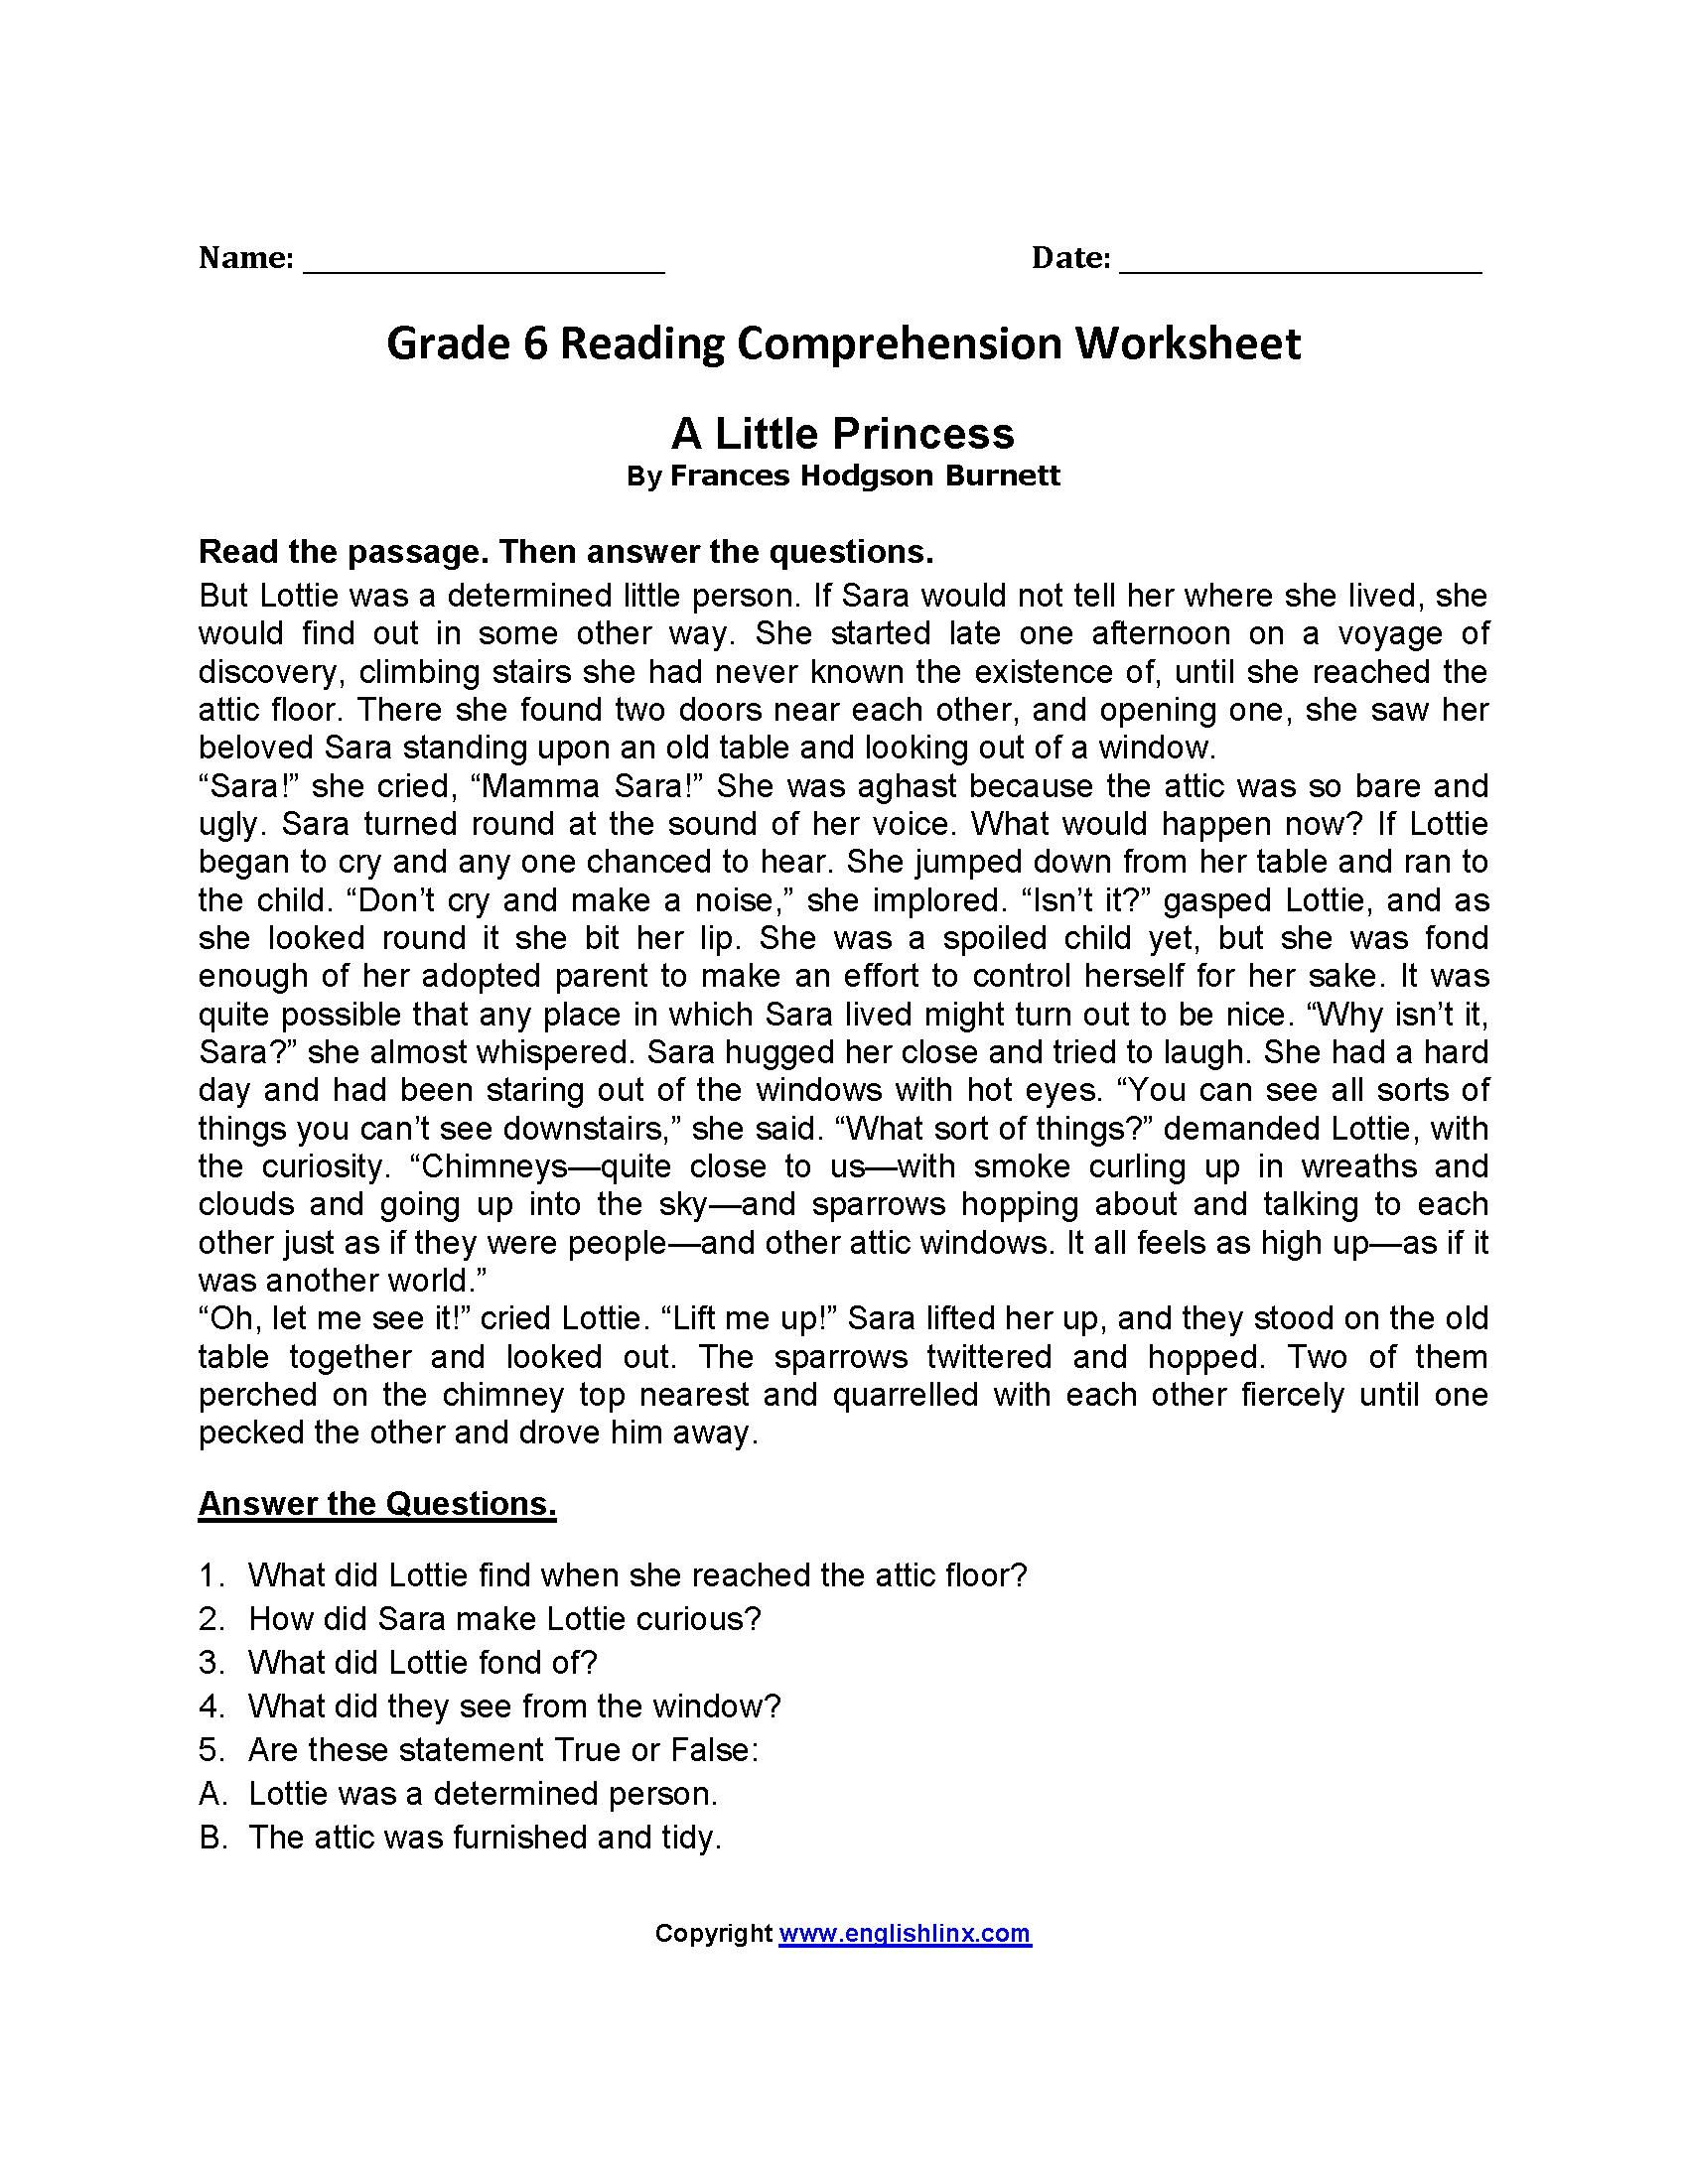 Free Printable Reading Worksheets For Grade 6 2